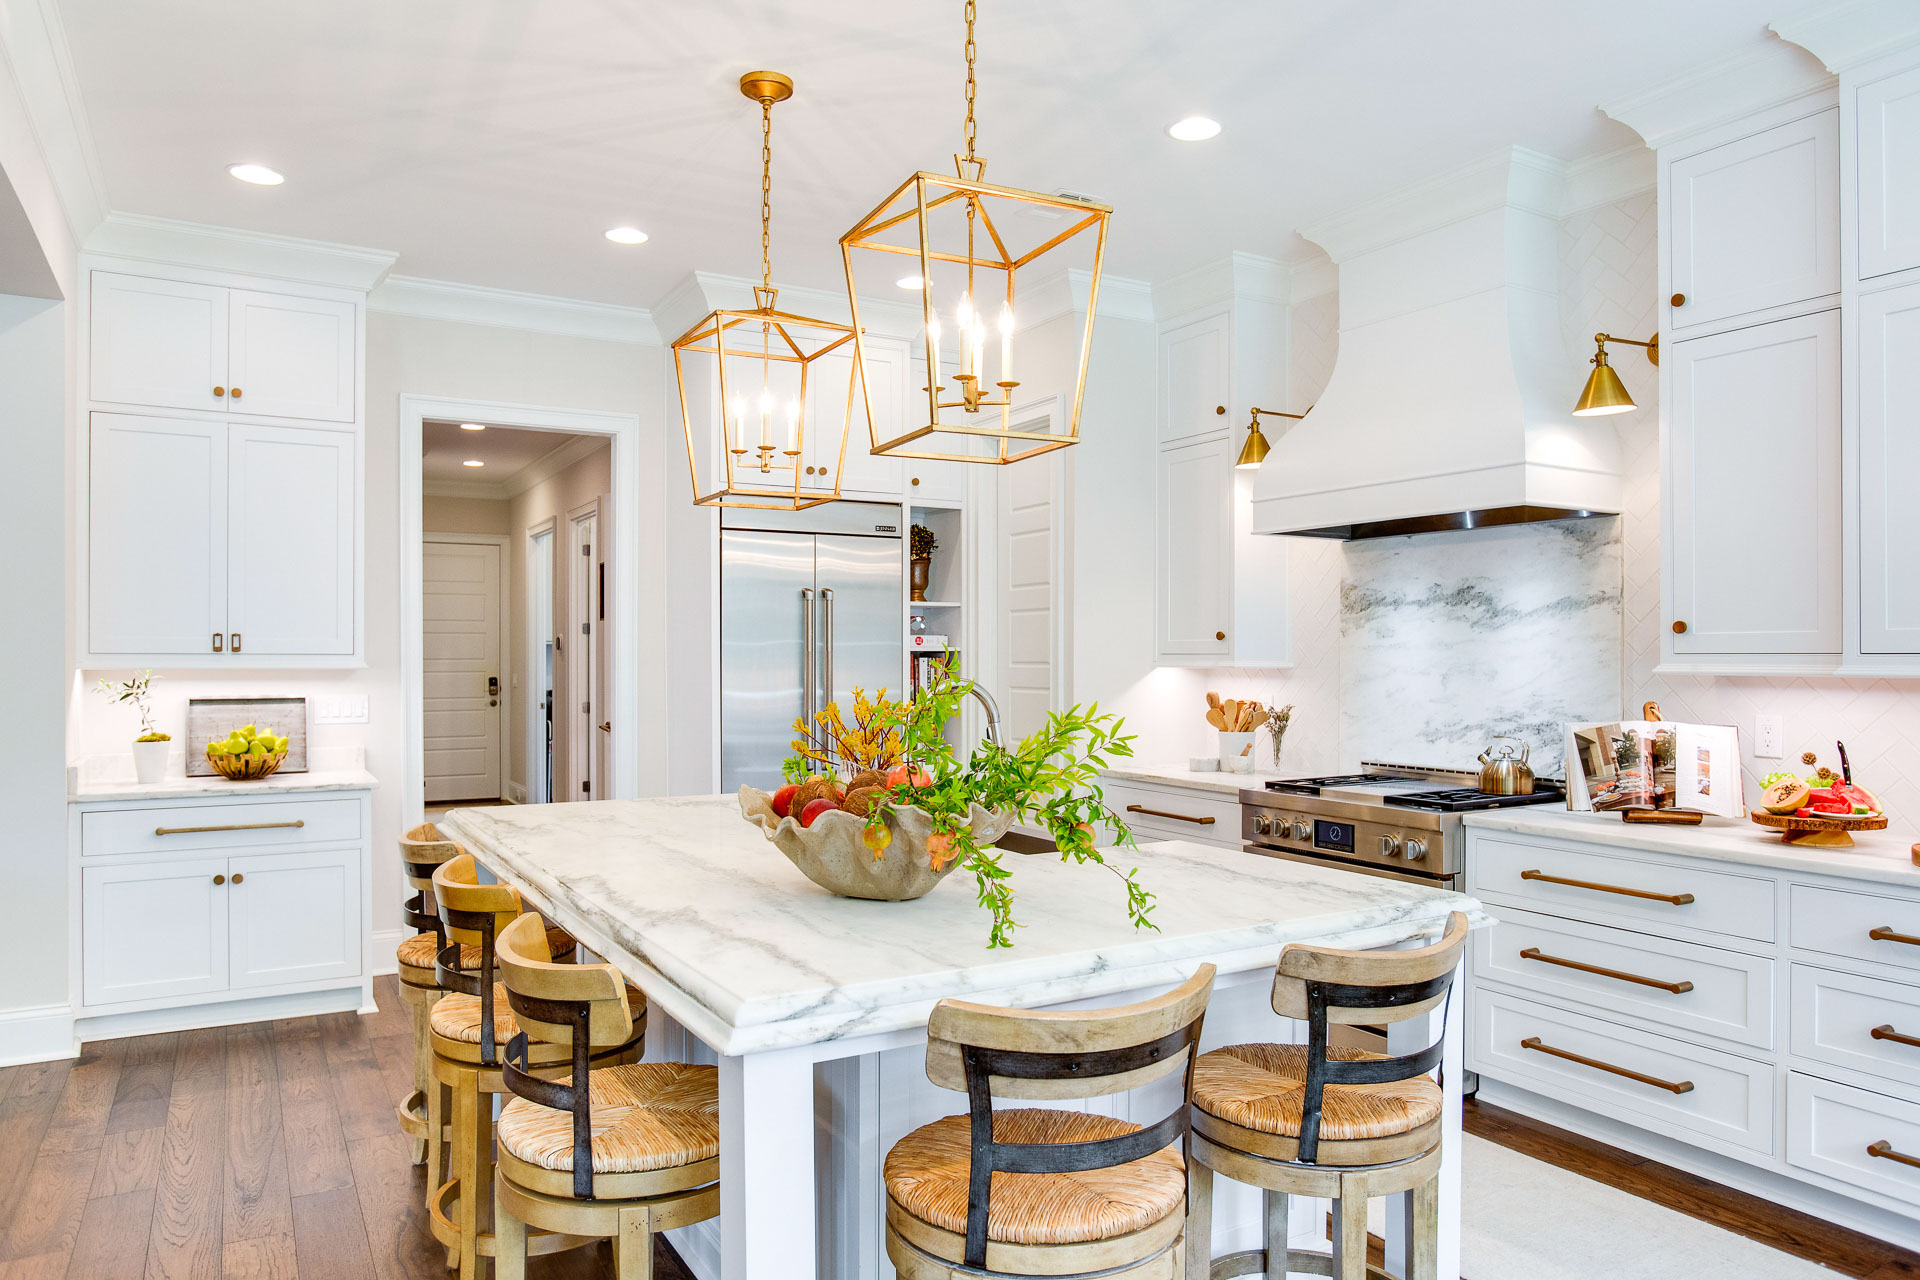 The kitchen island chandeliers are by Gabby Lighting.